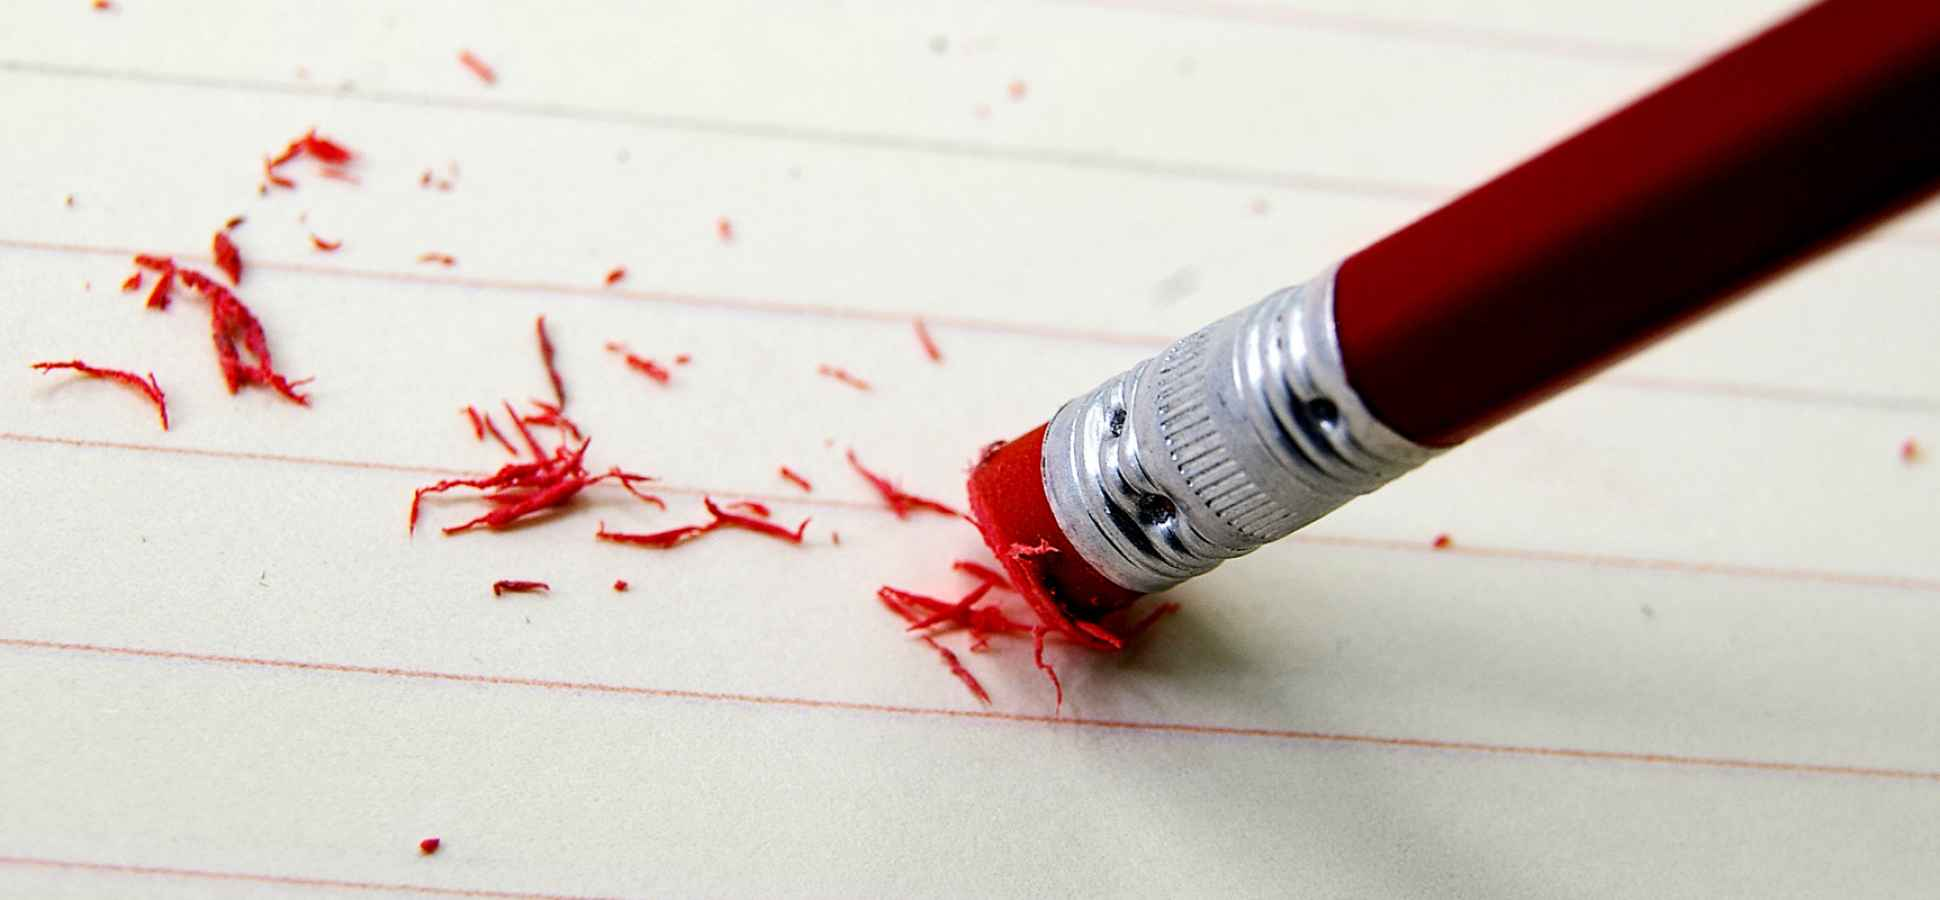 4 Massive Mistakes Leaders Make During Downturns